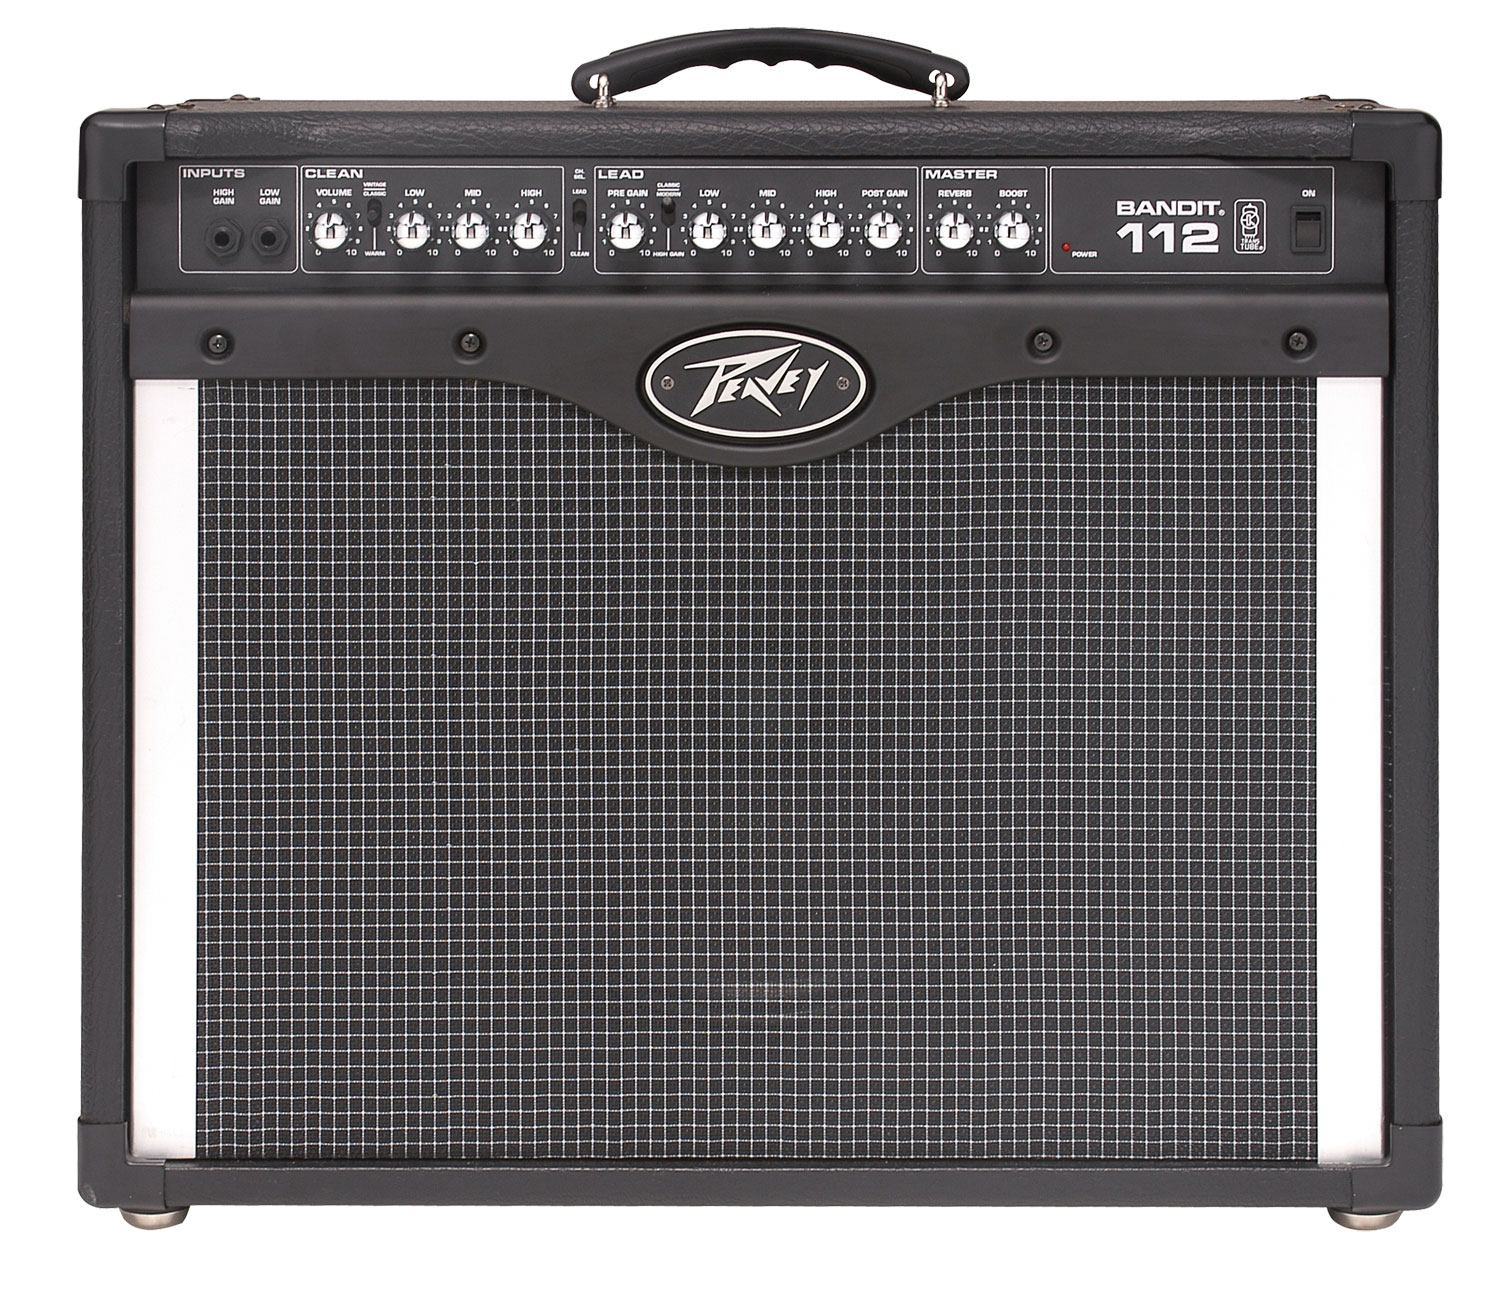 The Best Solid State Guitar Amps 80 To 1000 Gearank 20w T Amp Peavey